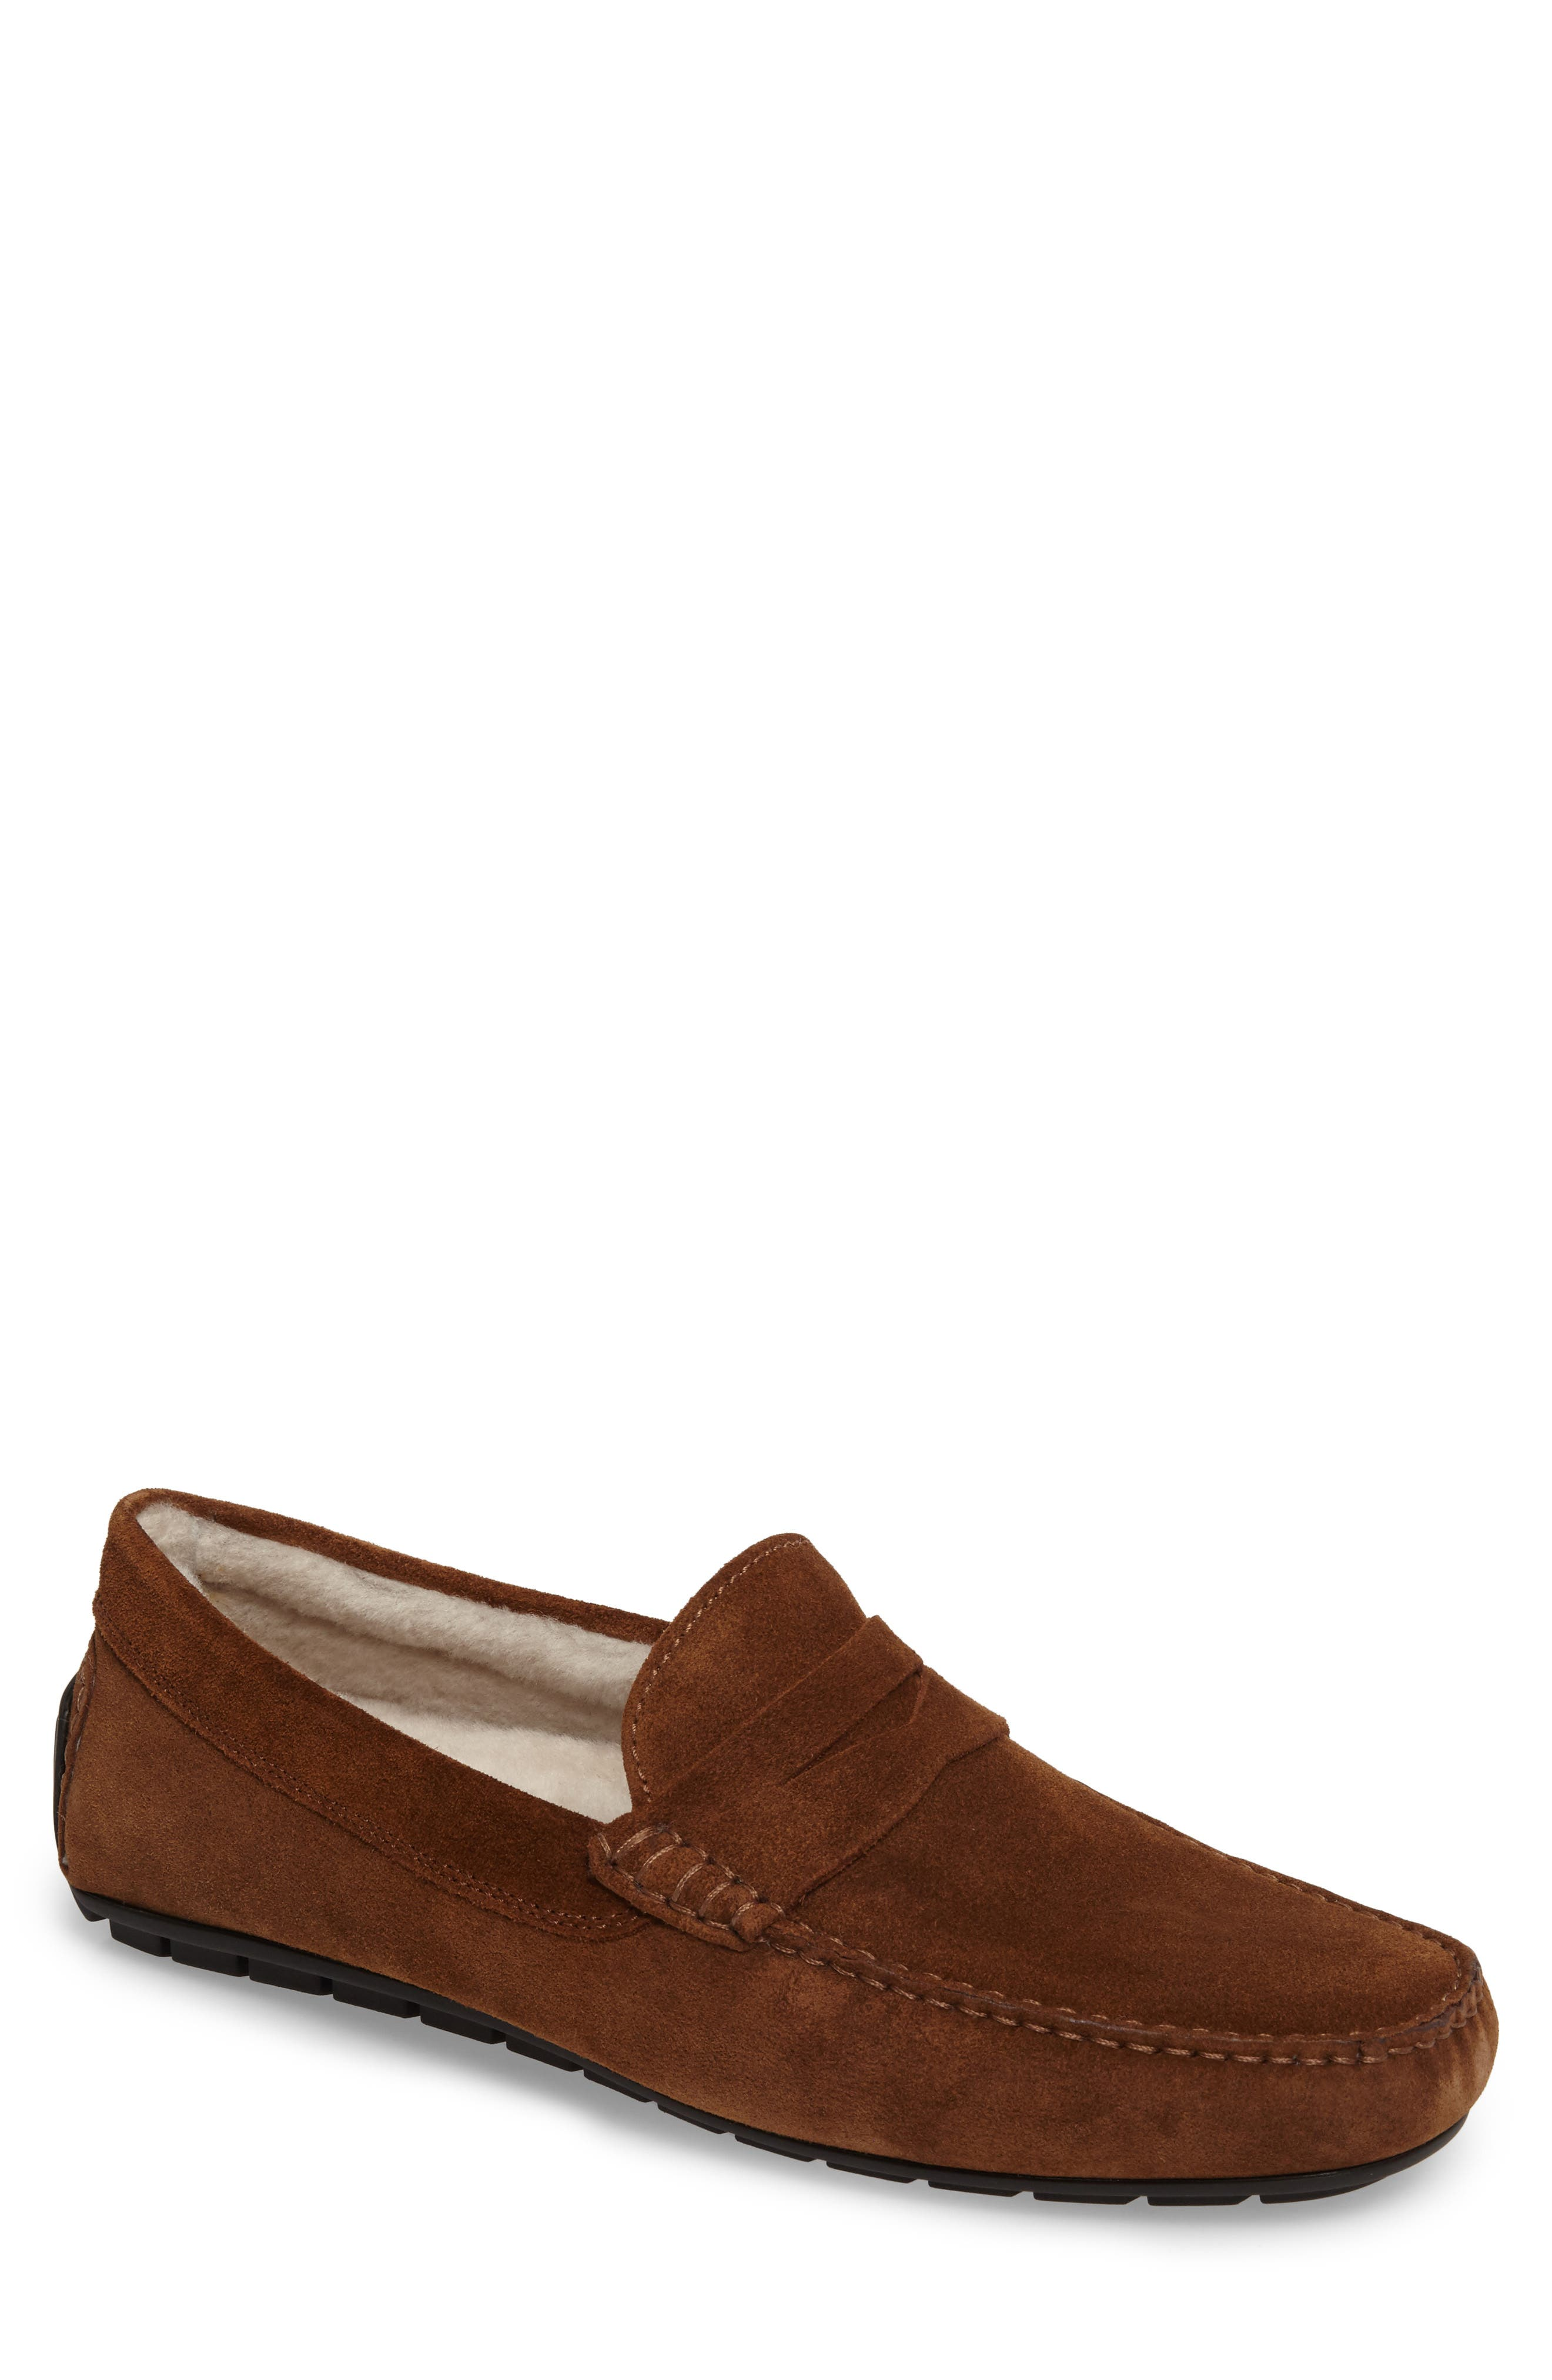 To Boot New York Norse Penny Loafer With Genuine Shearling, Brown